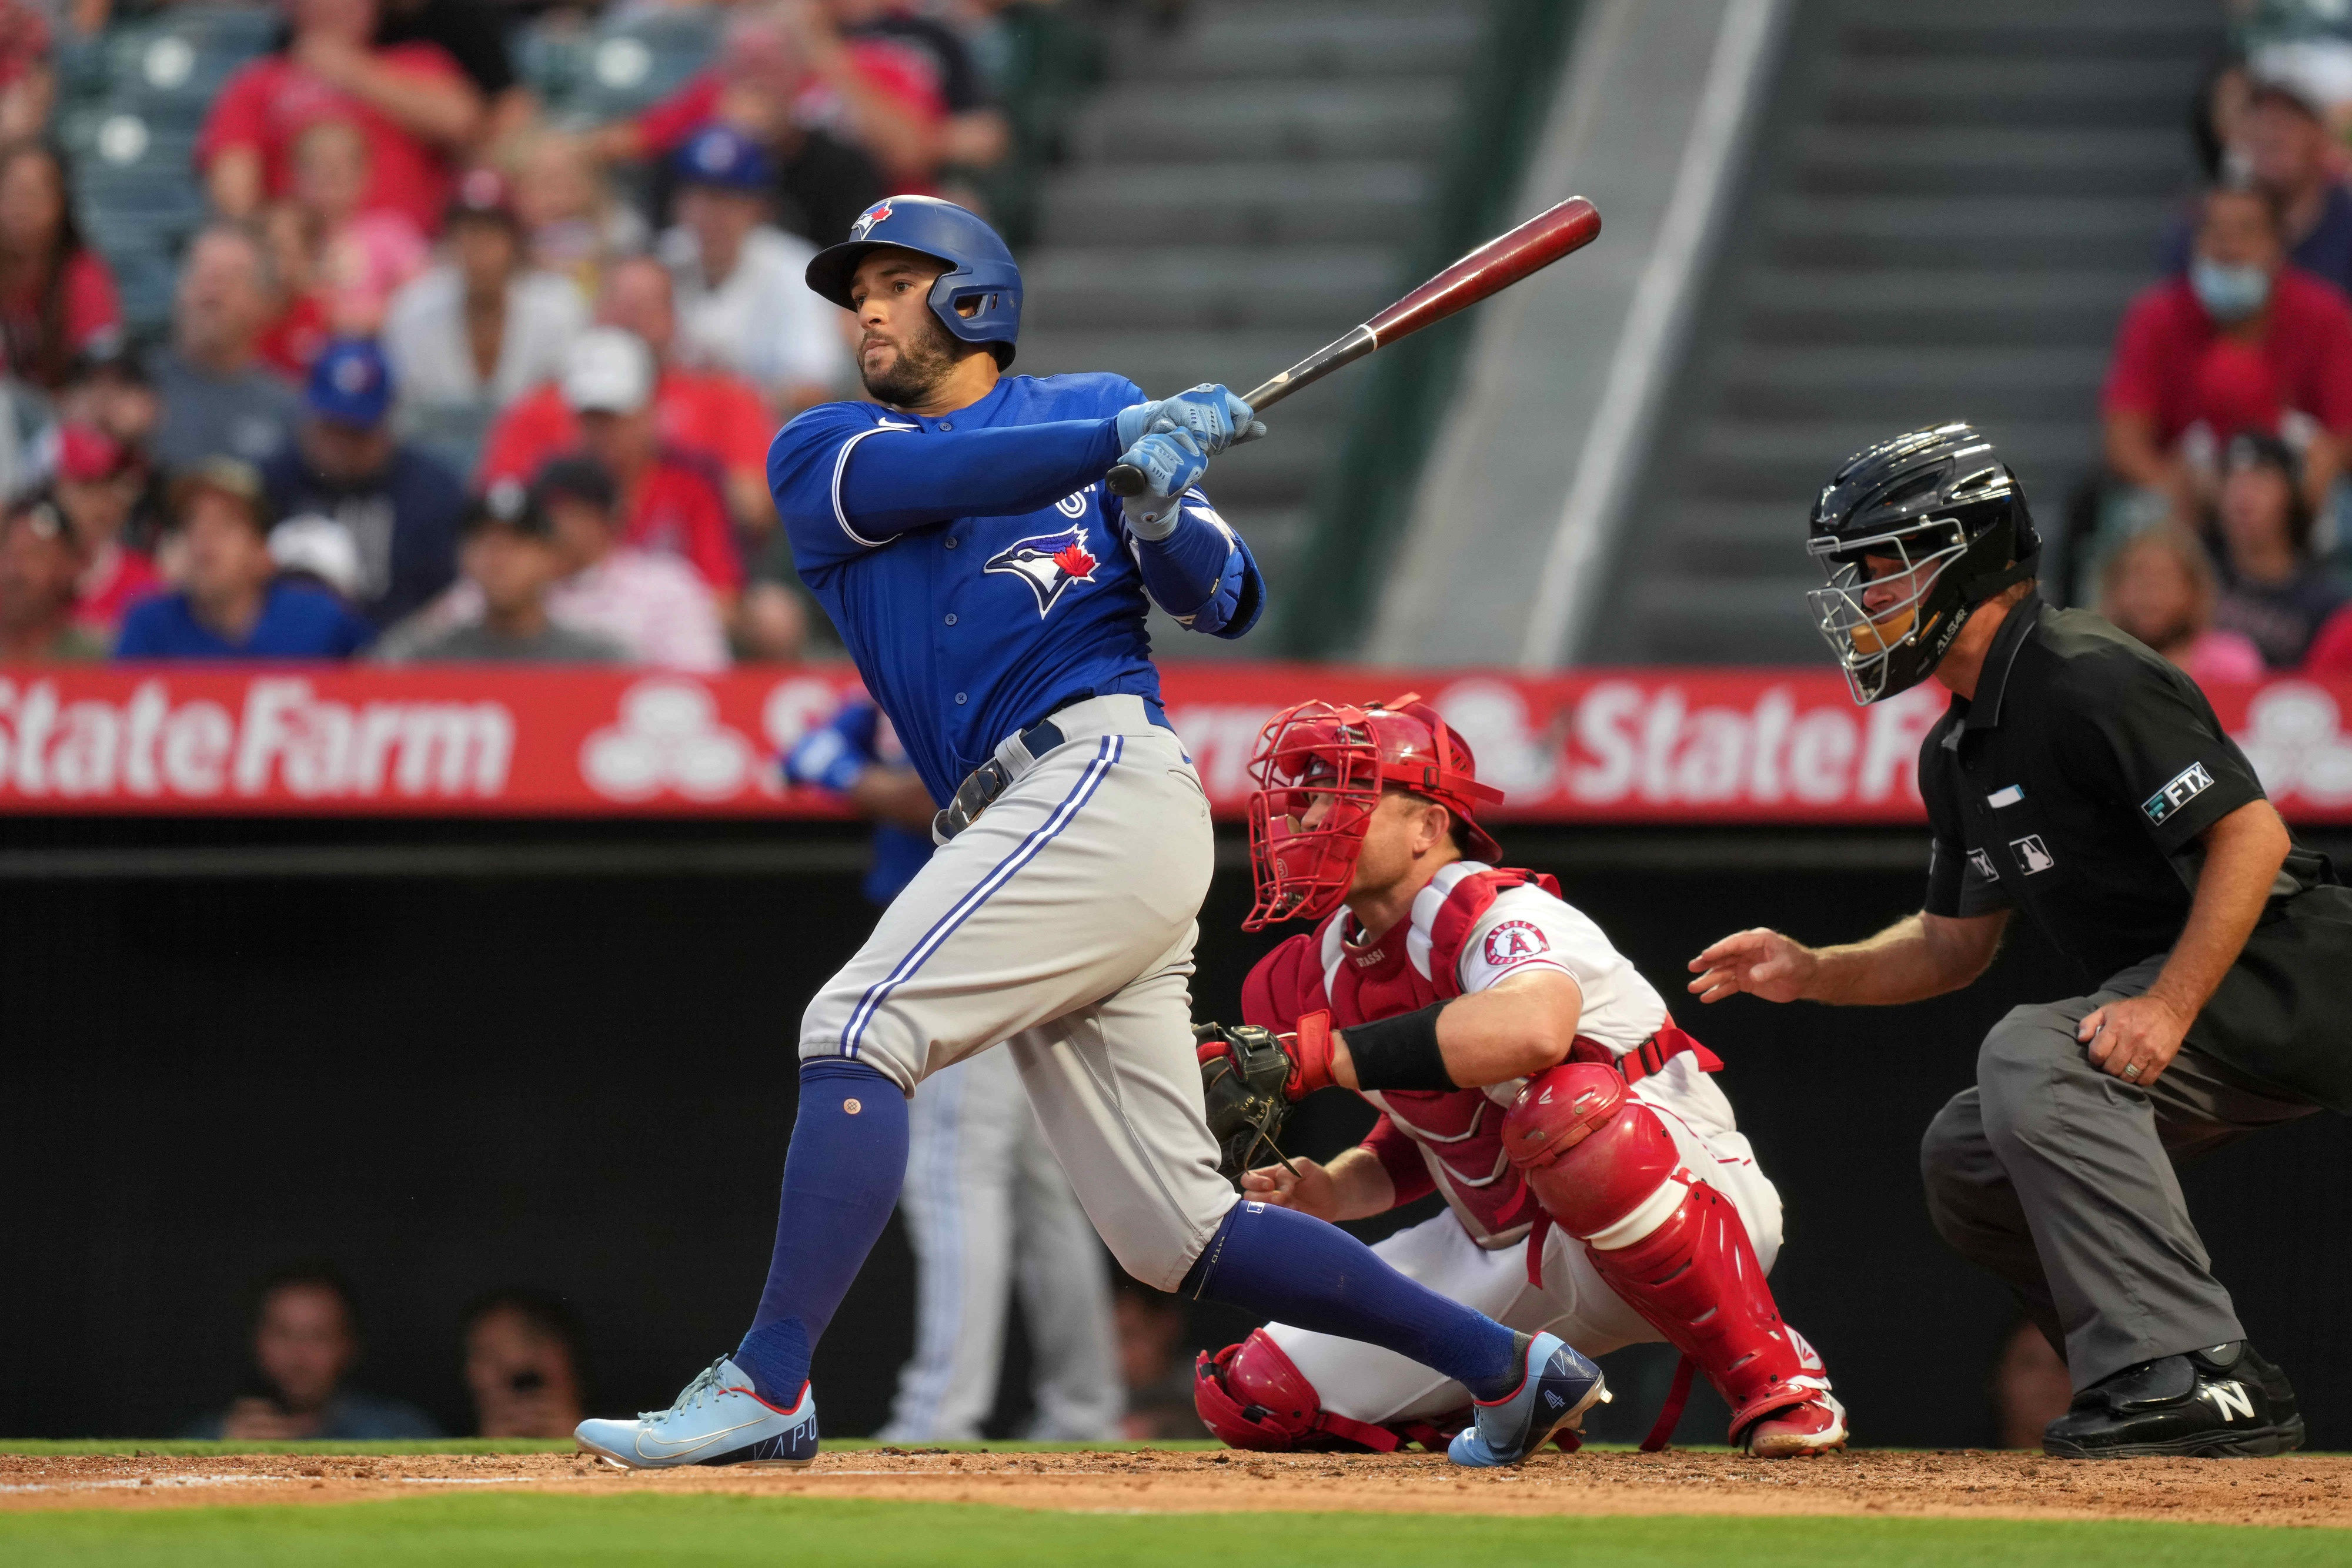 Toronto Blue Jays vs Seattle Mariners Prediction, 8/13/2021 MLB Pick, Tips and Odds